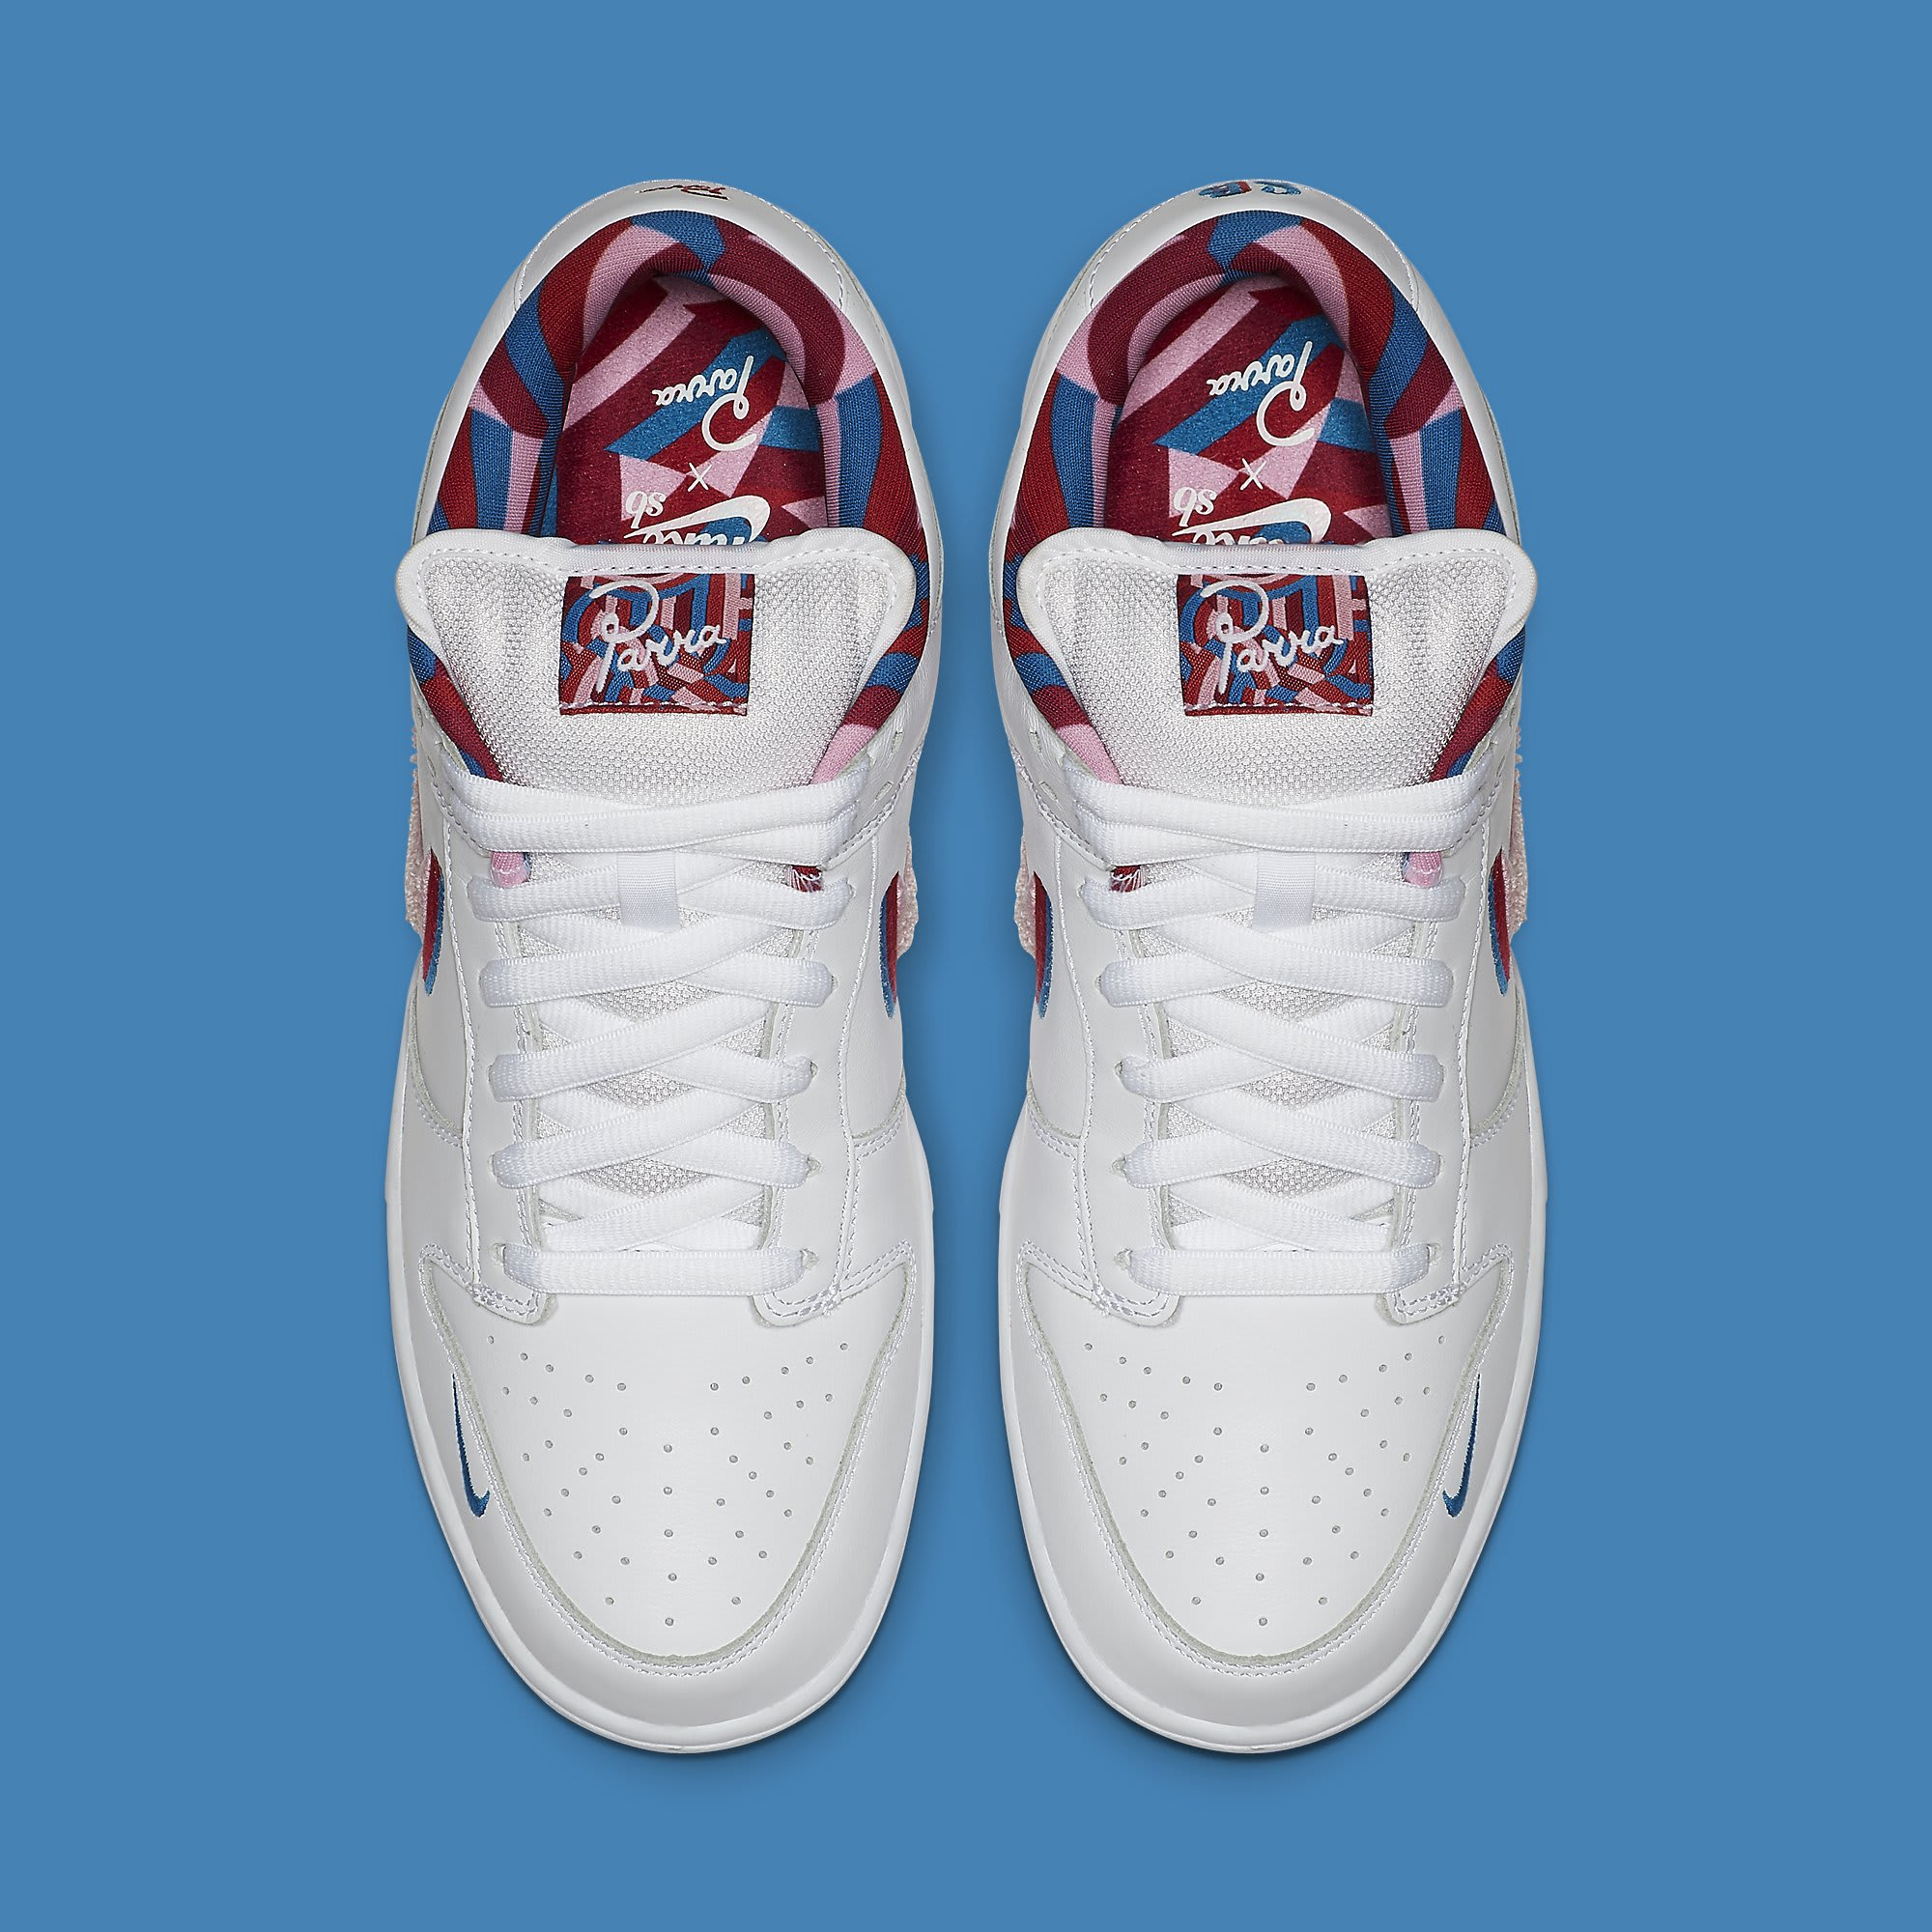 Parra x Nike SB Dunk Low CN4504-100 Top